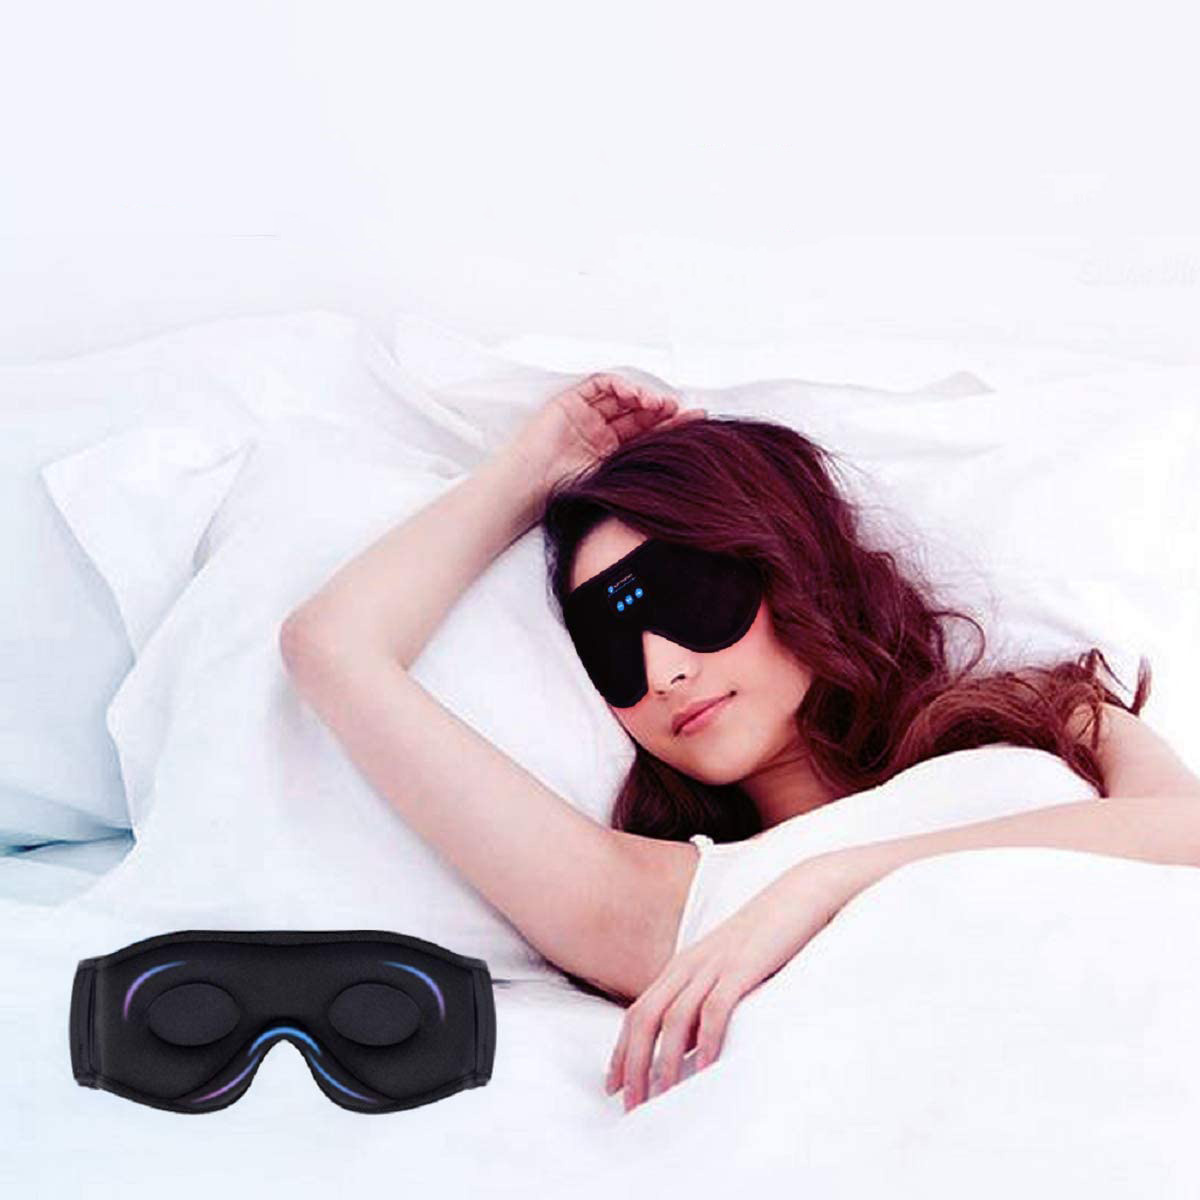 Watotgafer Sleeping Headphones